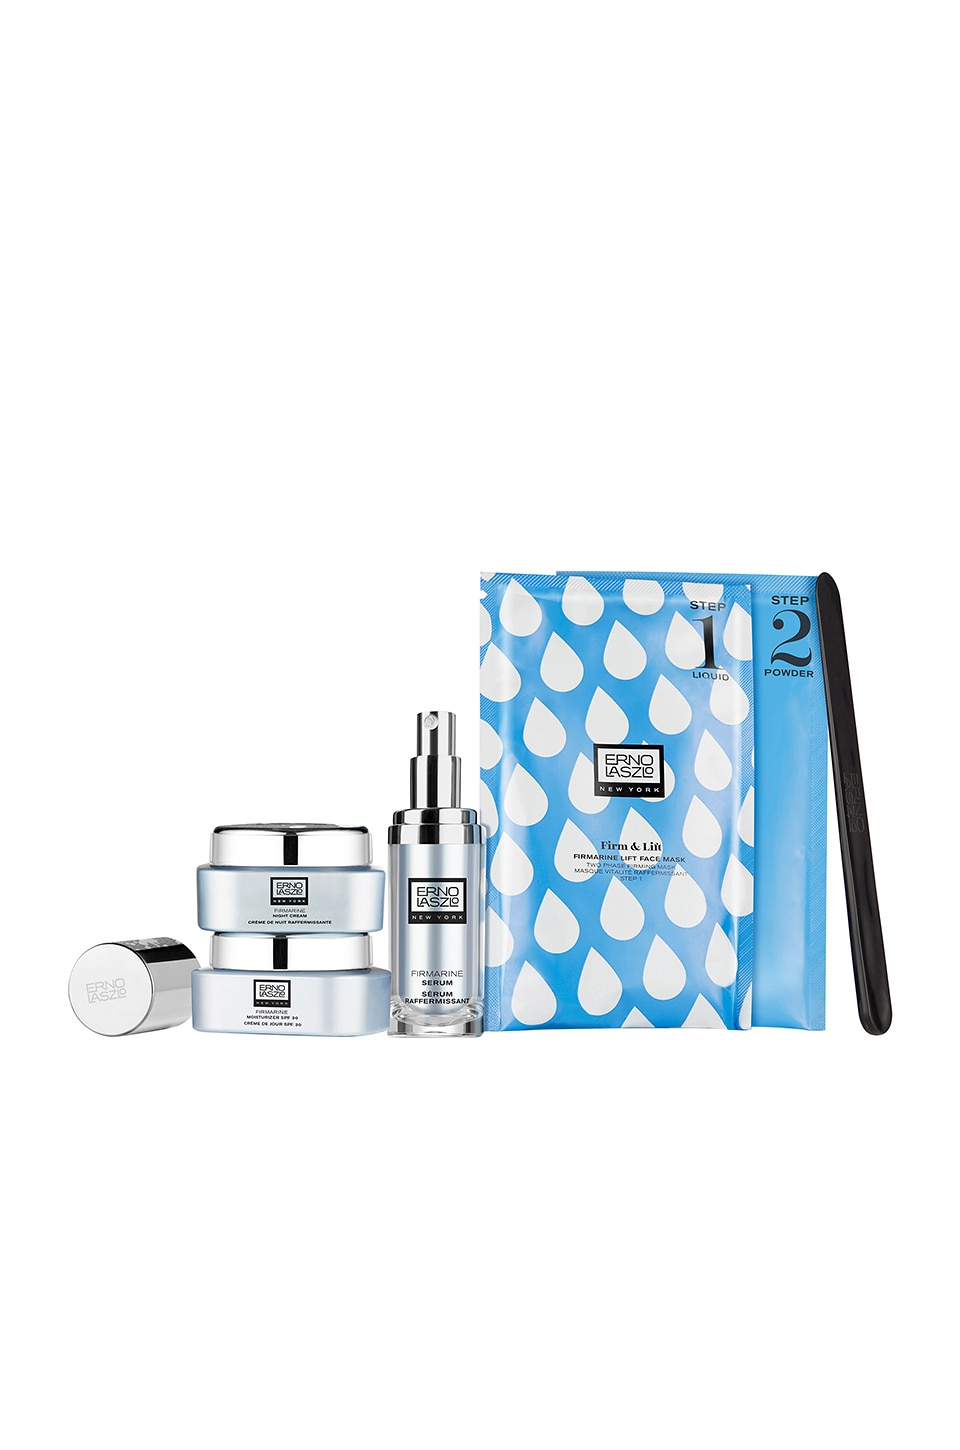 Erno Laszlo The Ultimate Lift: Antioxidant Skin Set